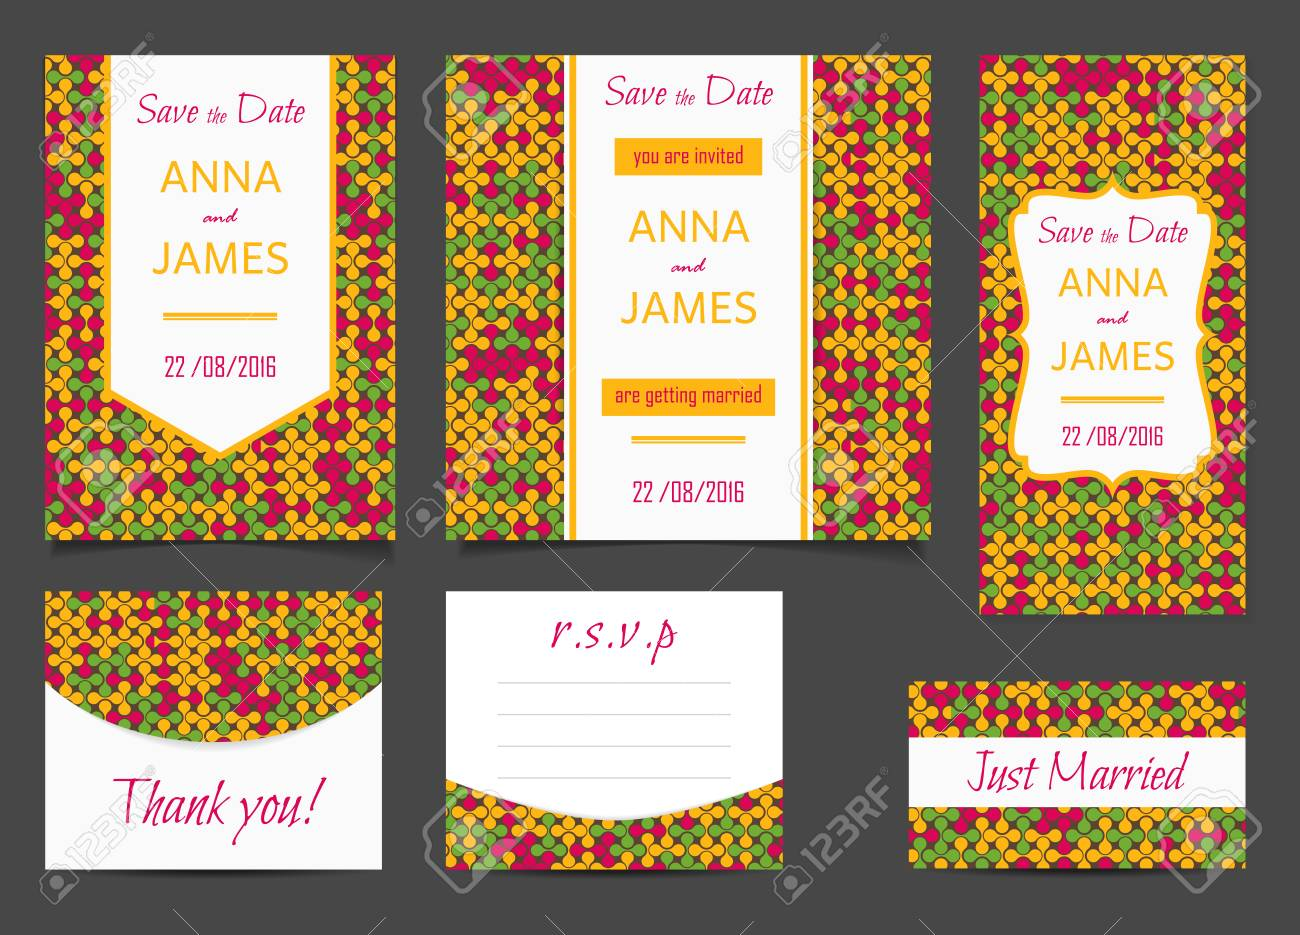 Beautiful Wedding Set Of Printed Materials With A Abstract Design